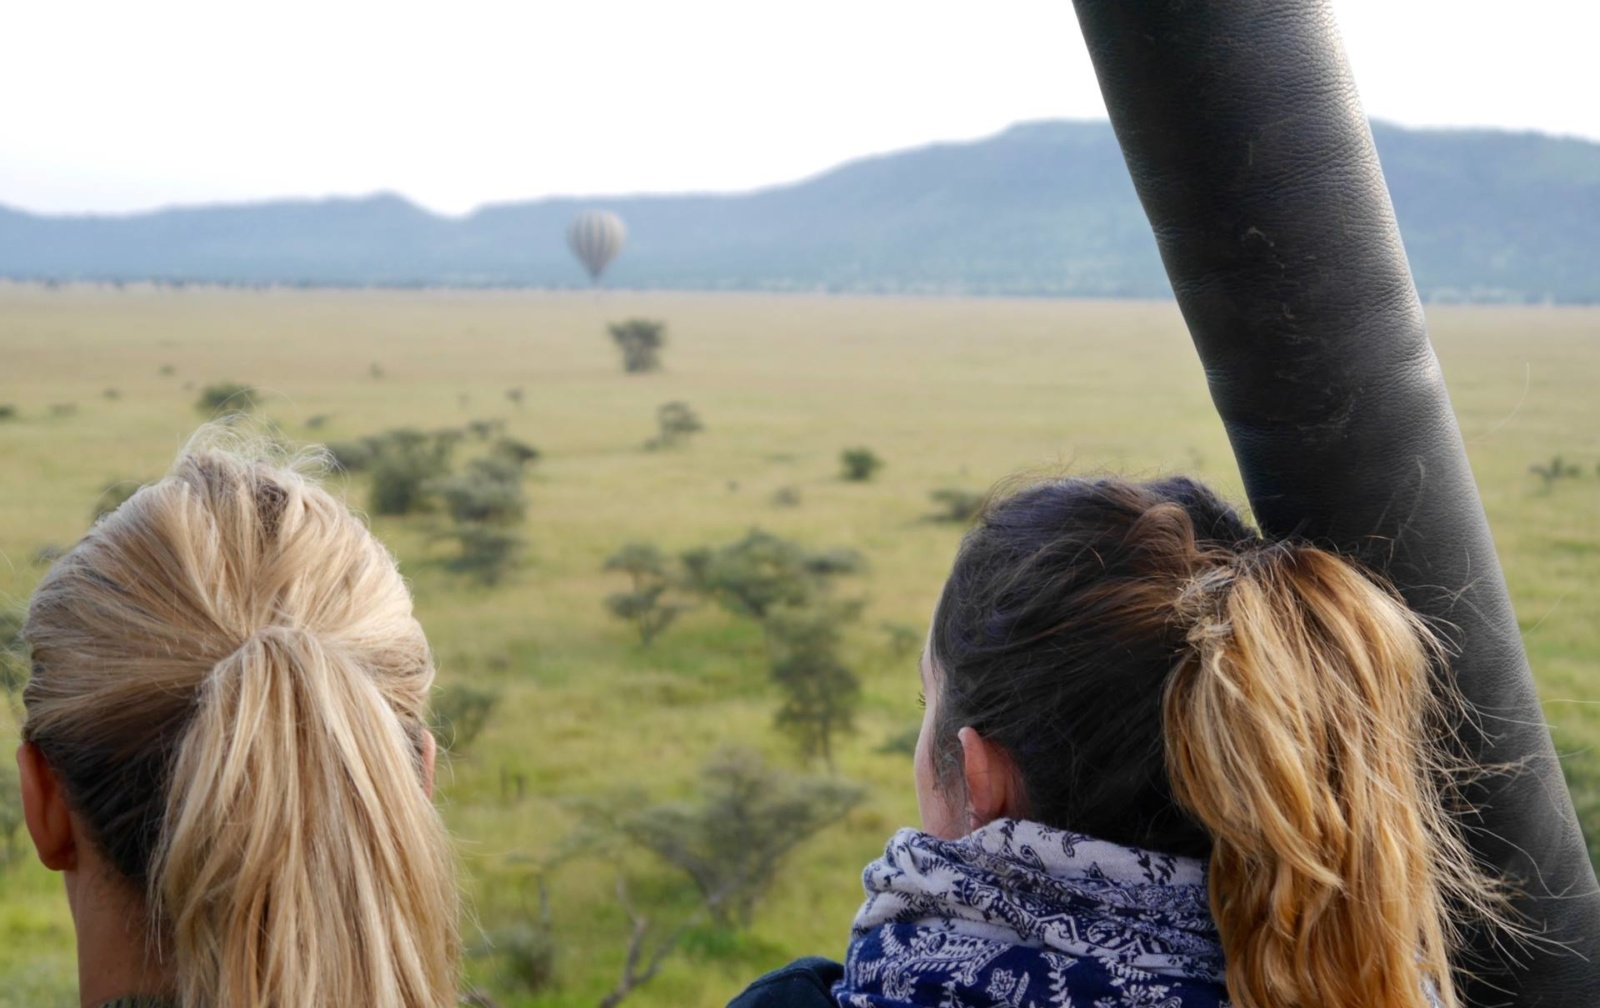 5 of My Most Unforgettable Travel Moments